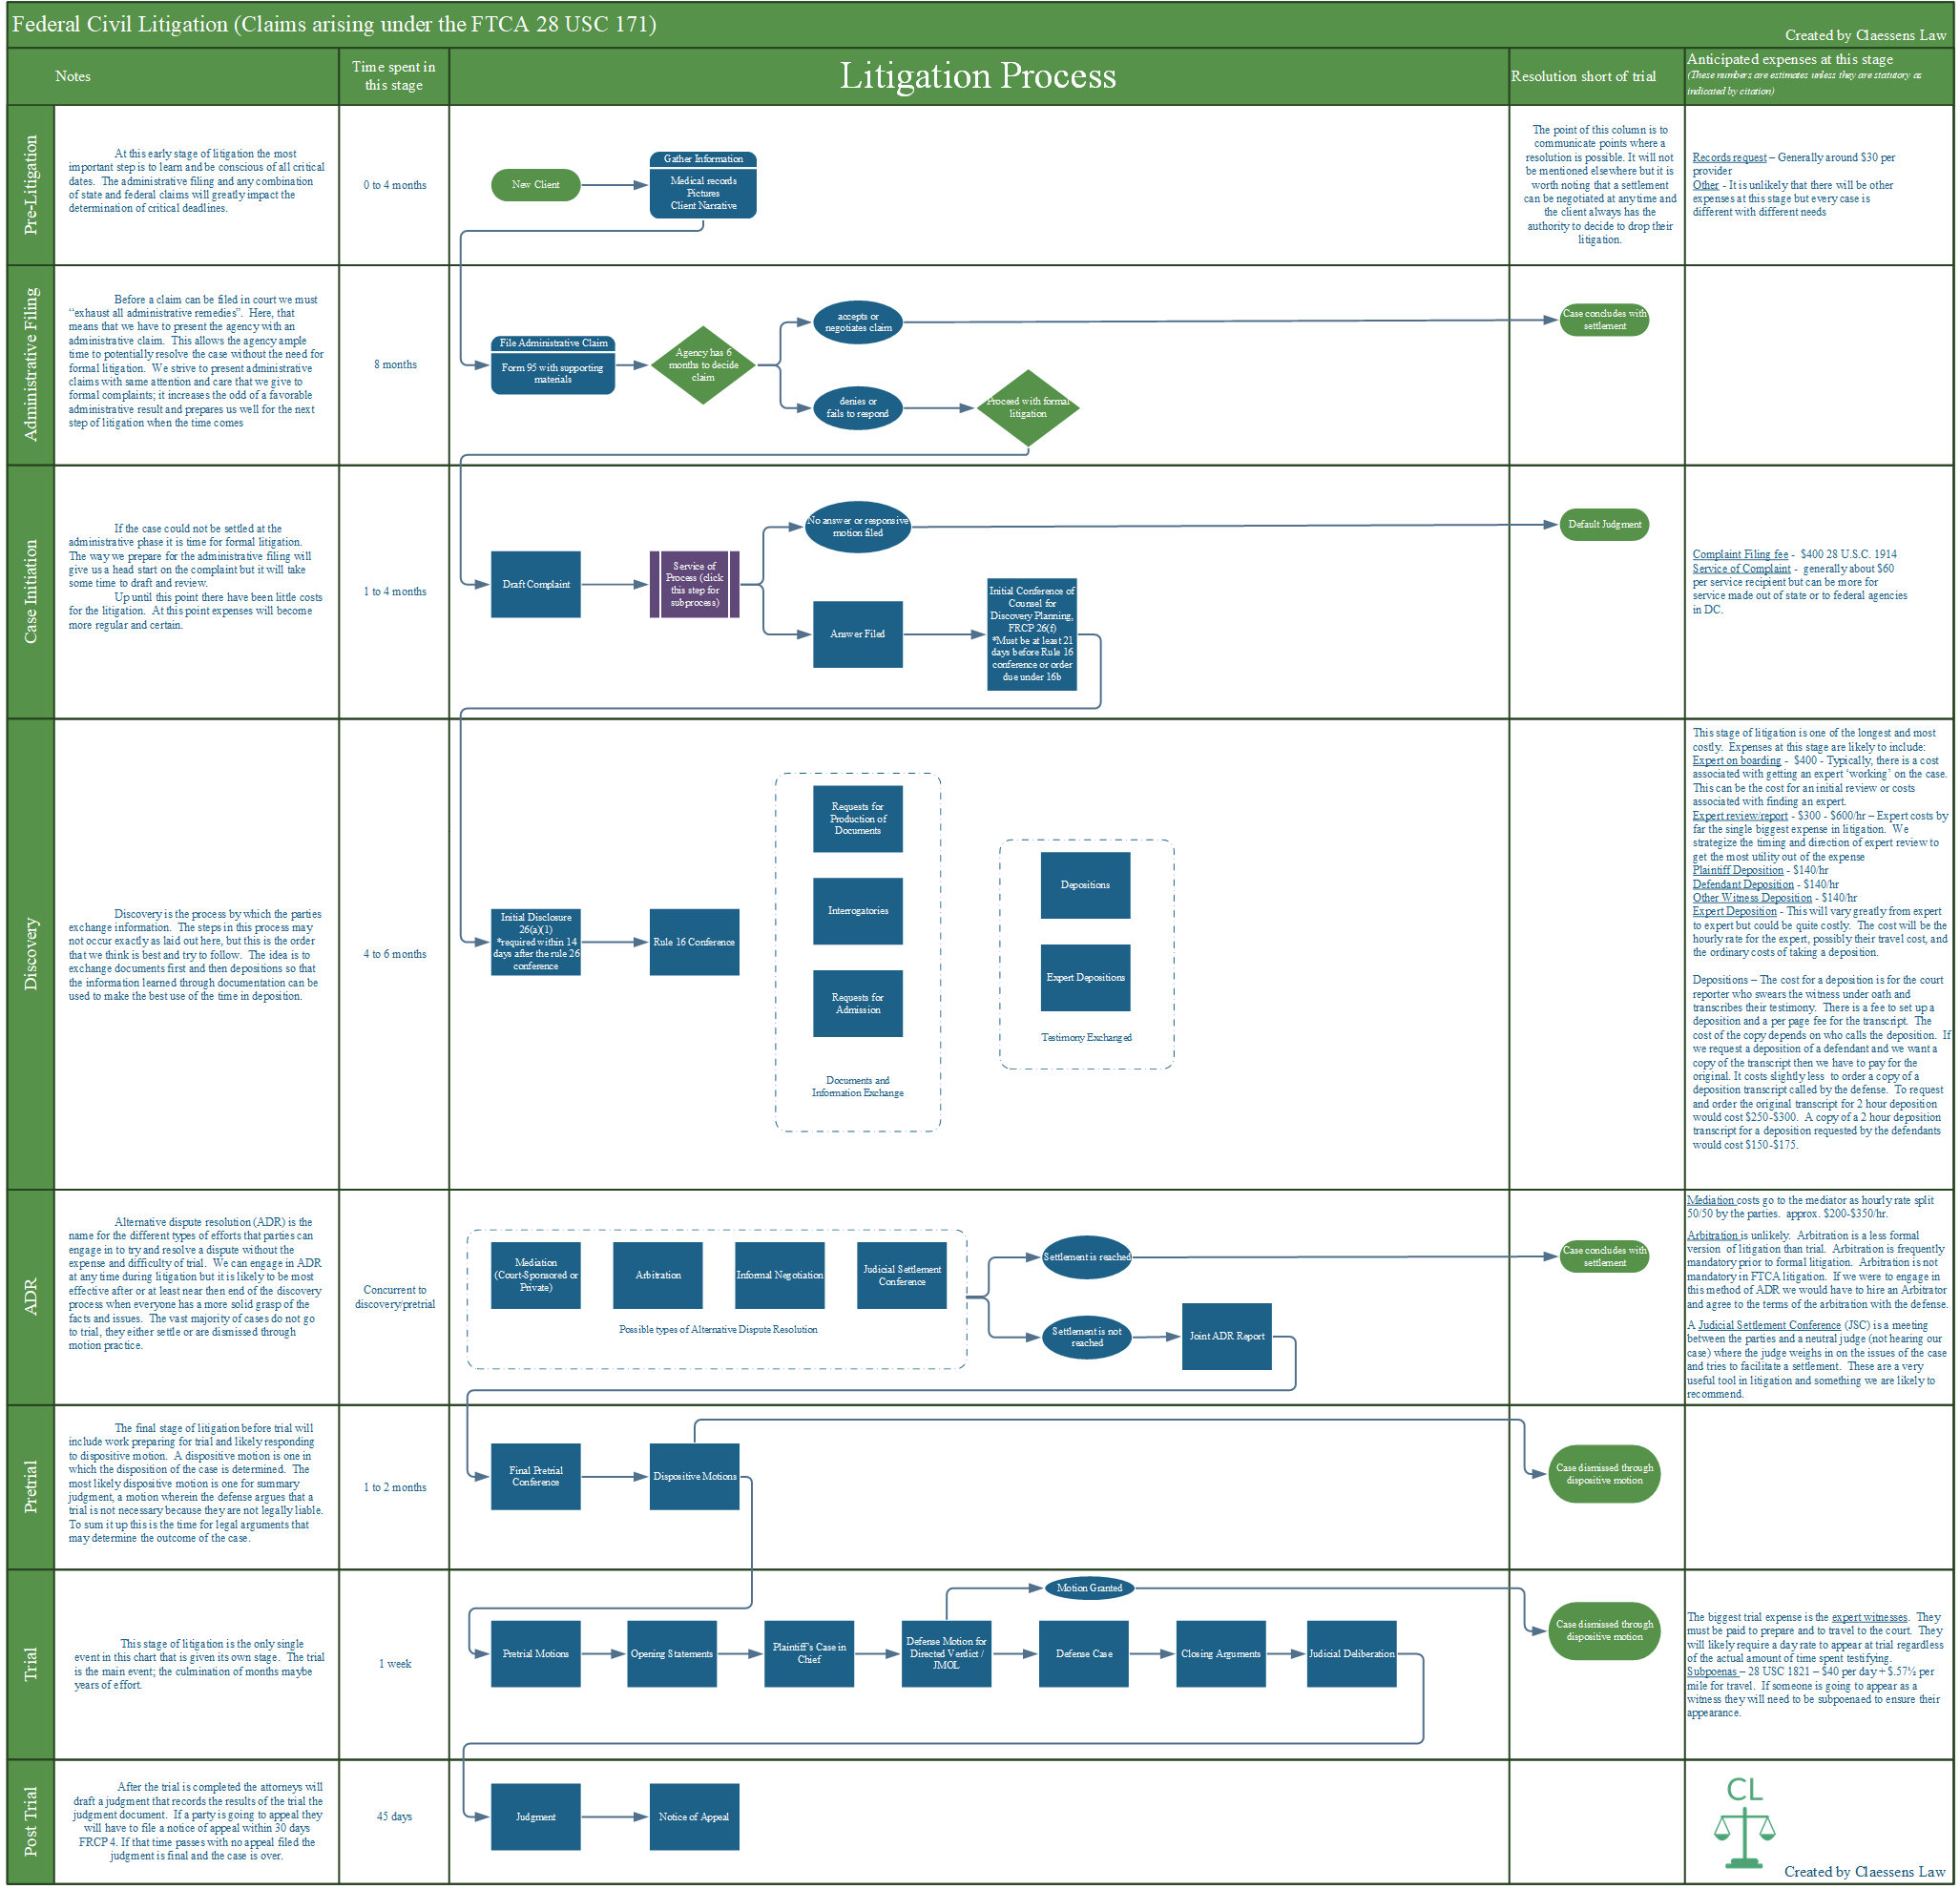 Download here - The chart is very large because federal litigation is complicated.  Click the image to expand or click download here for a pdf.  The pdf includes an additional Service of Process sub-flow chart. We hope you find it useful.